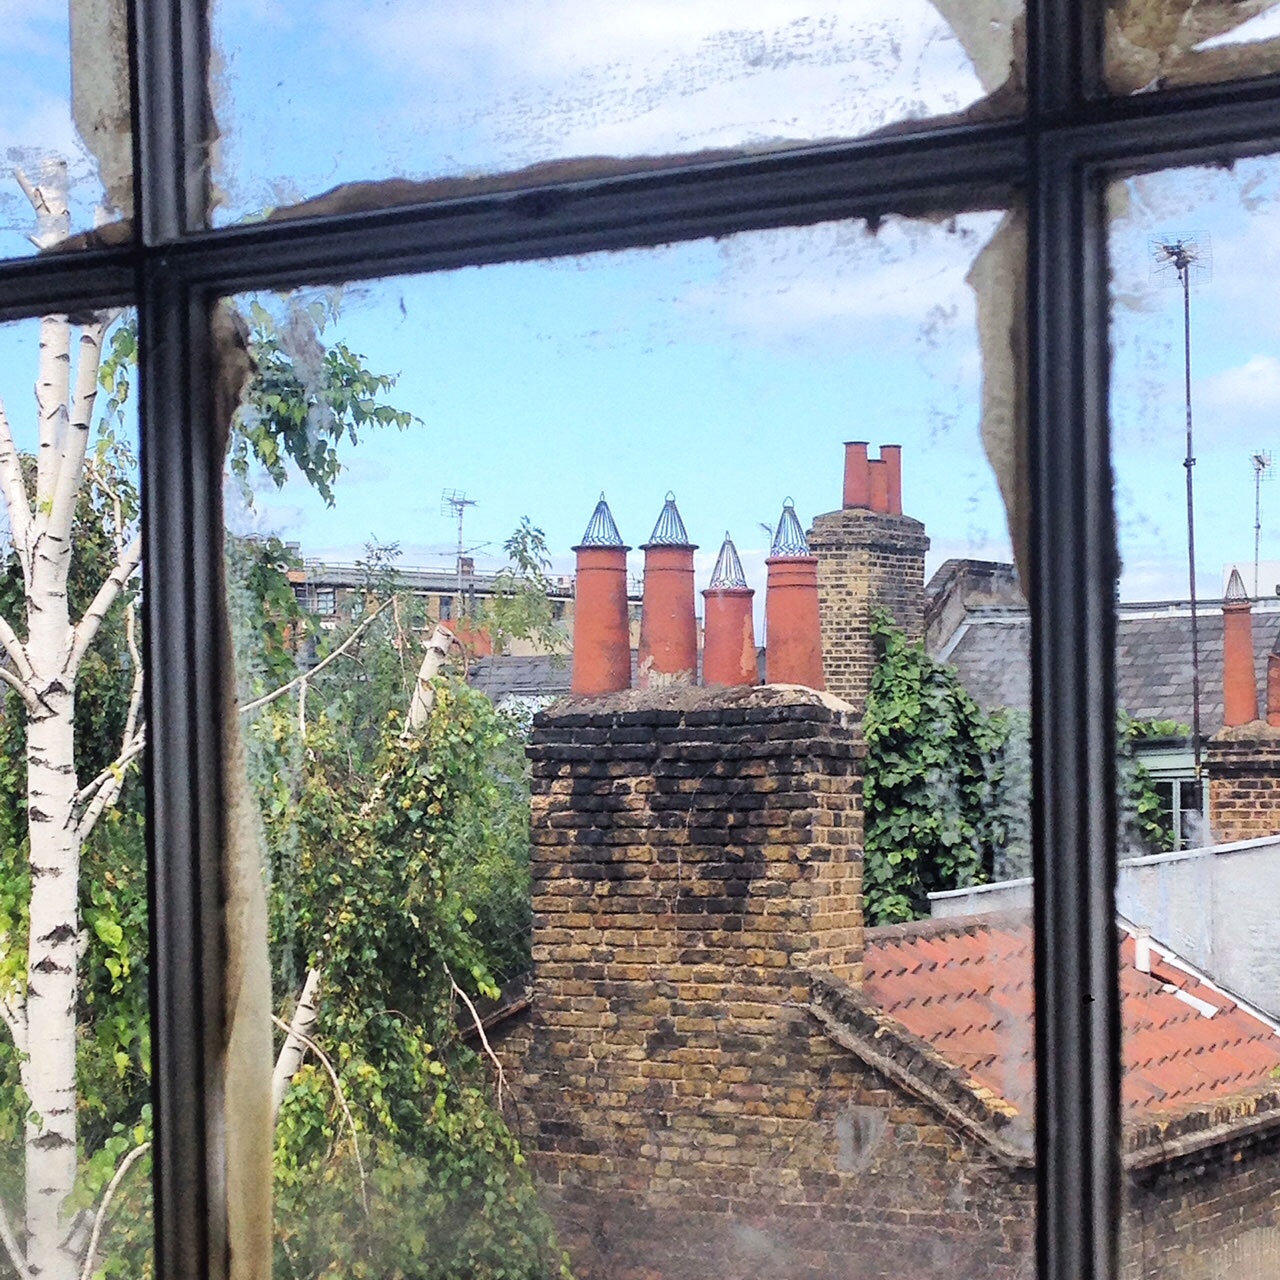 Spitalfields chimney pots